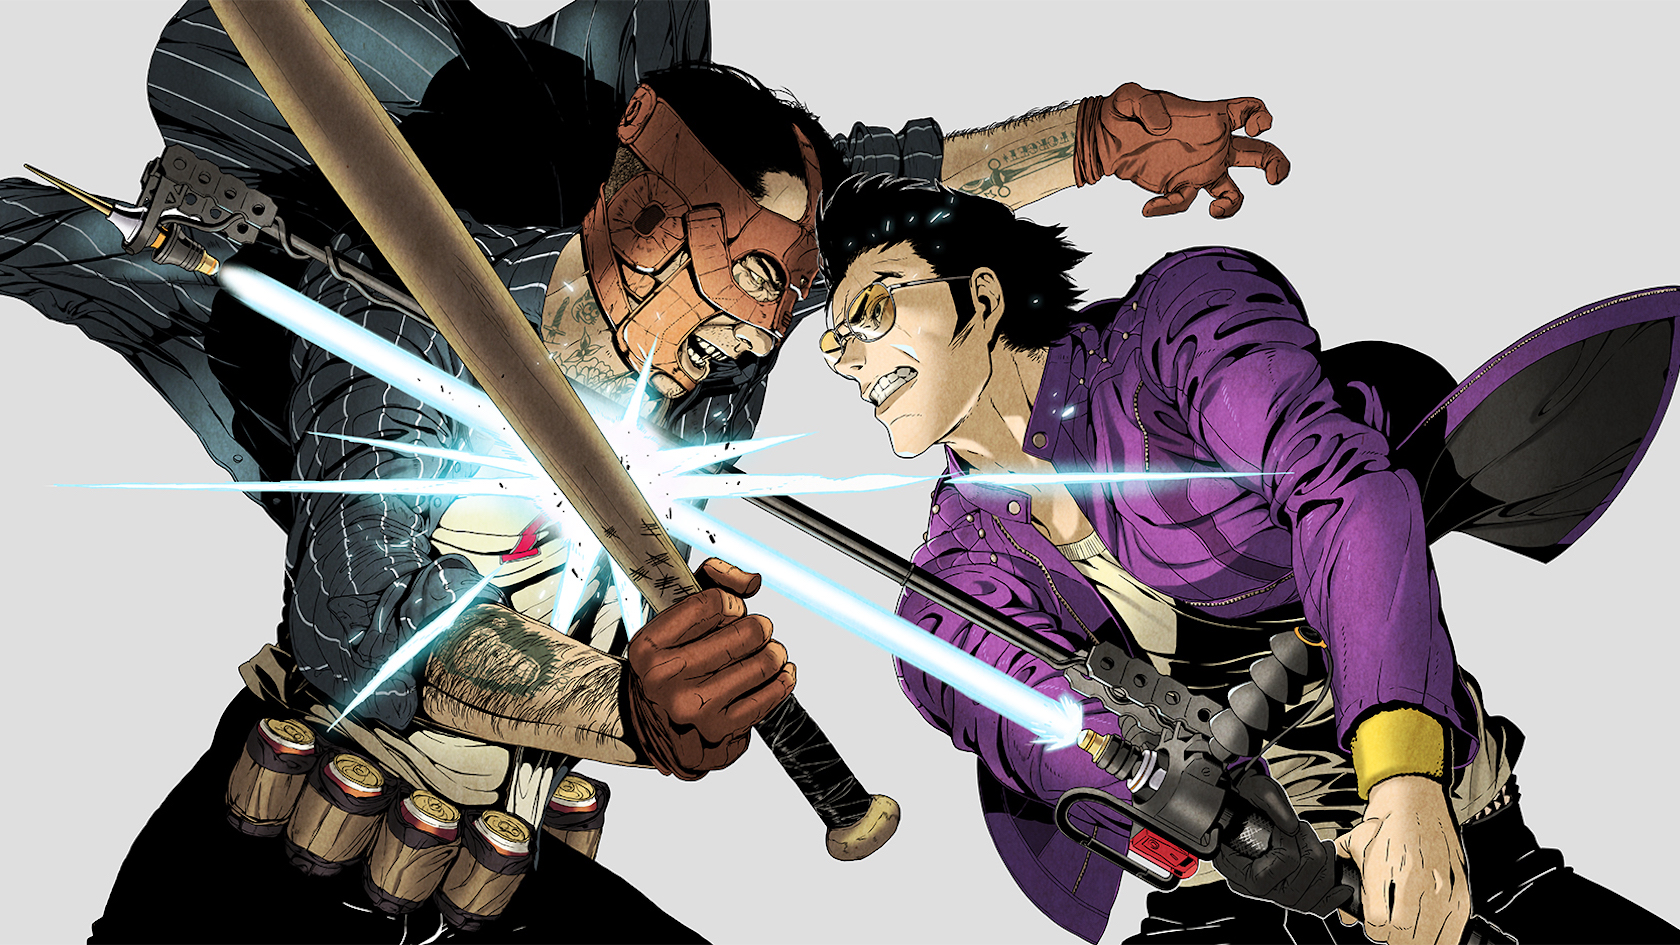 """No More Heroes 3 May Announce """"Something Cool"""" at E3, According to Suda51"""